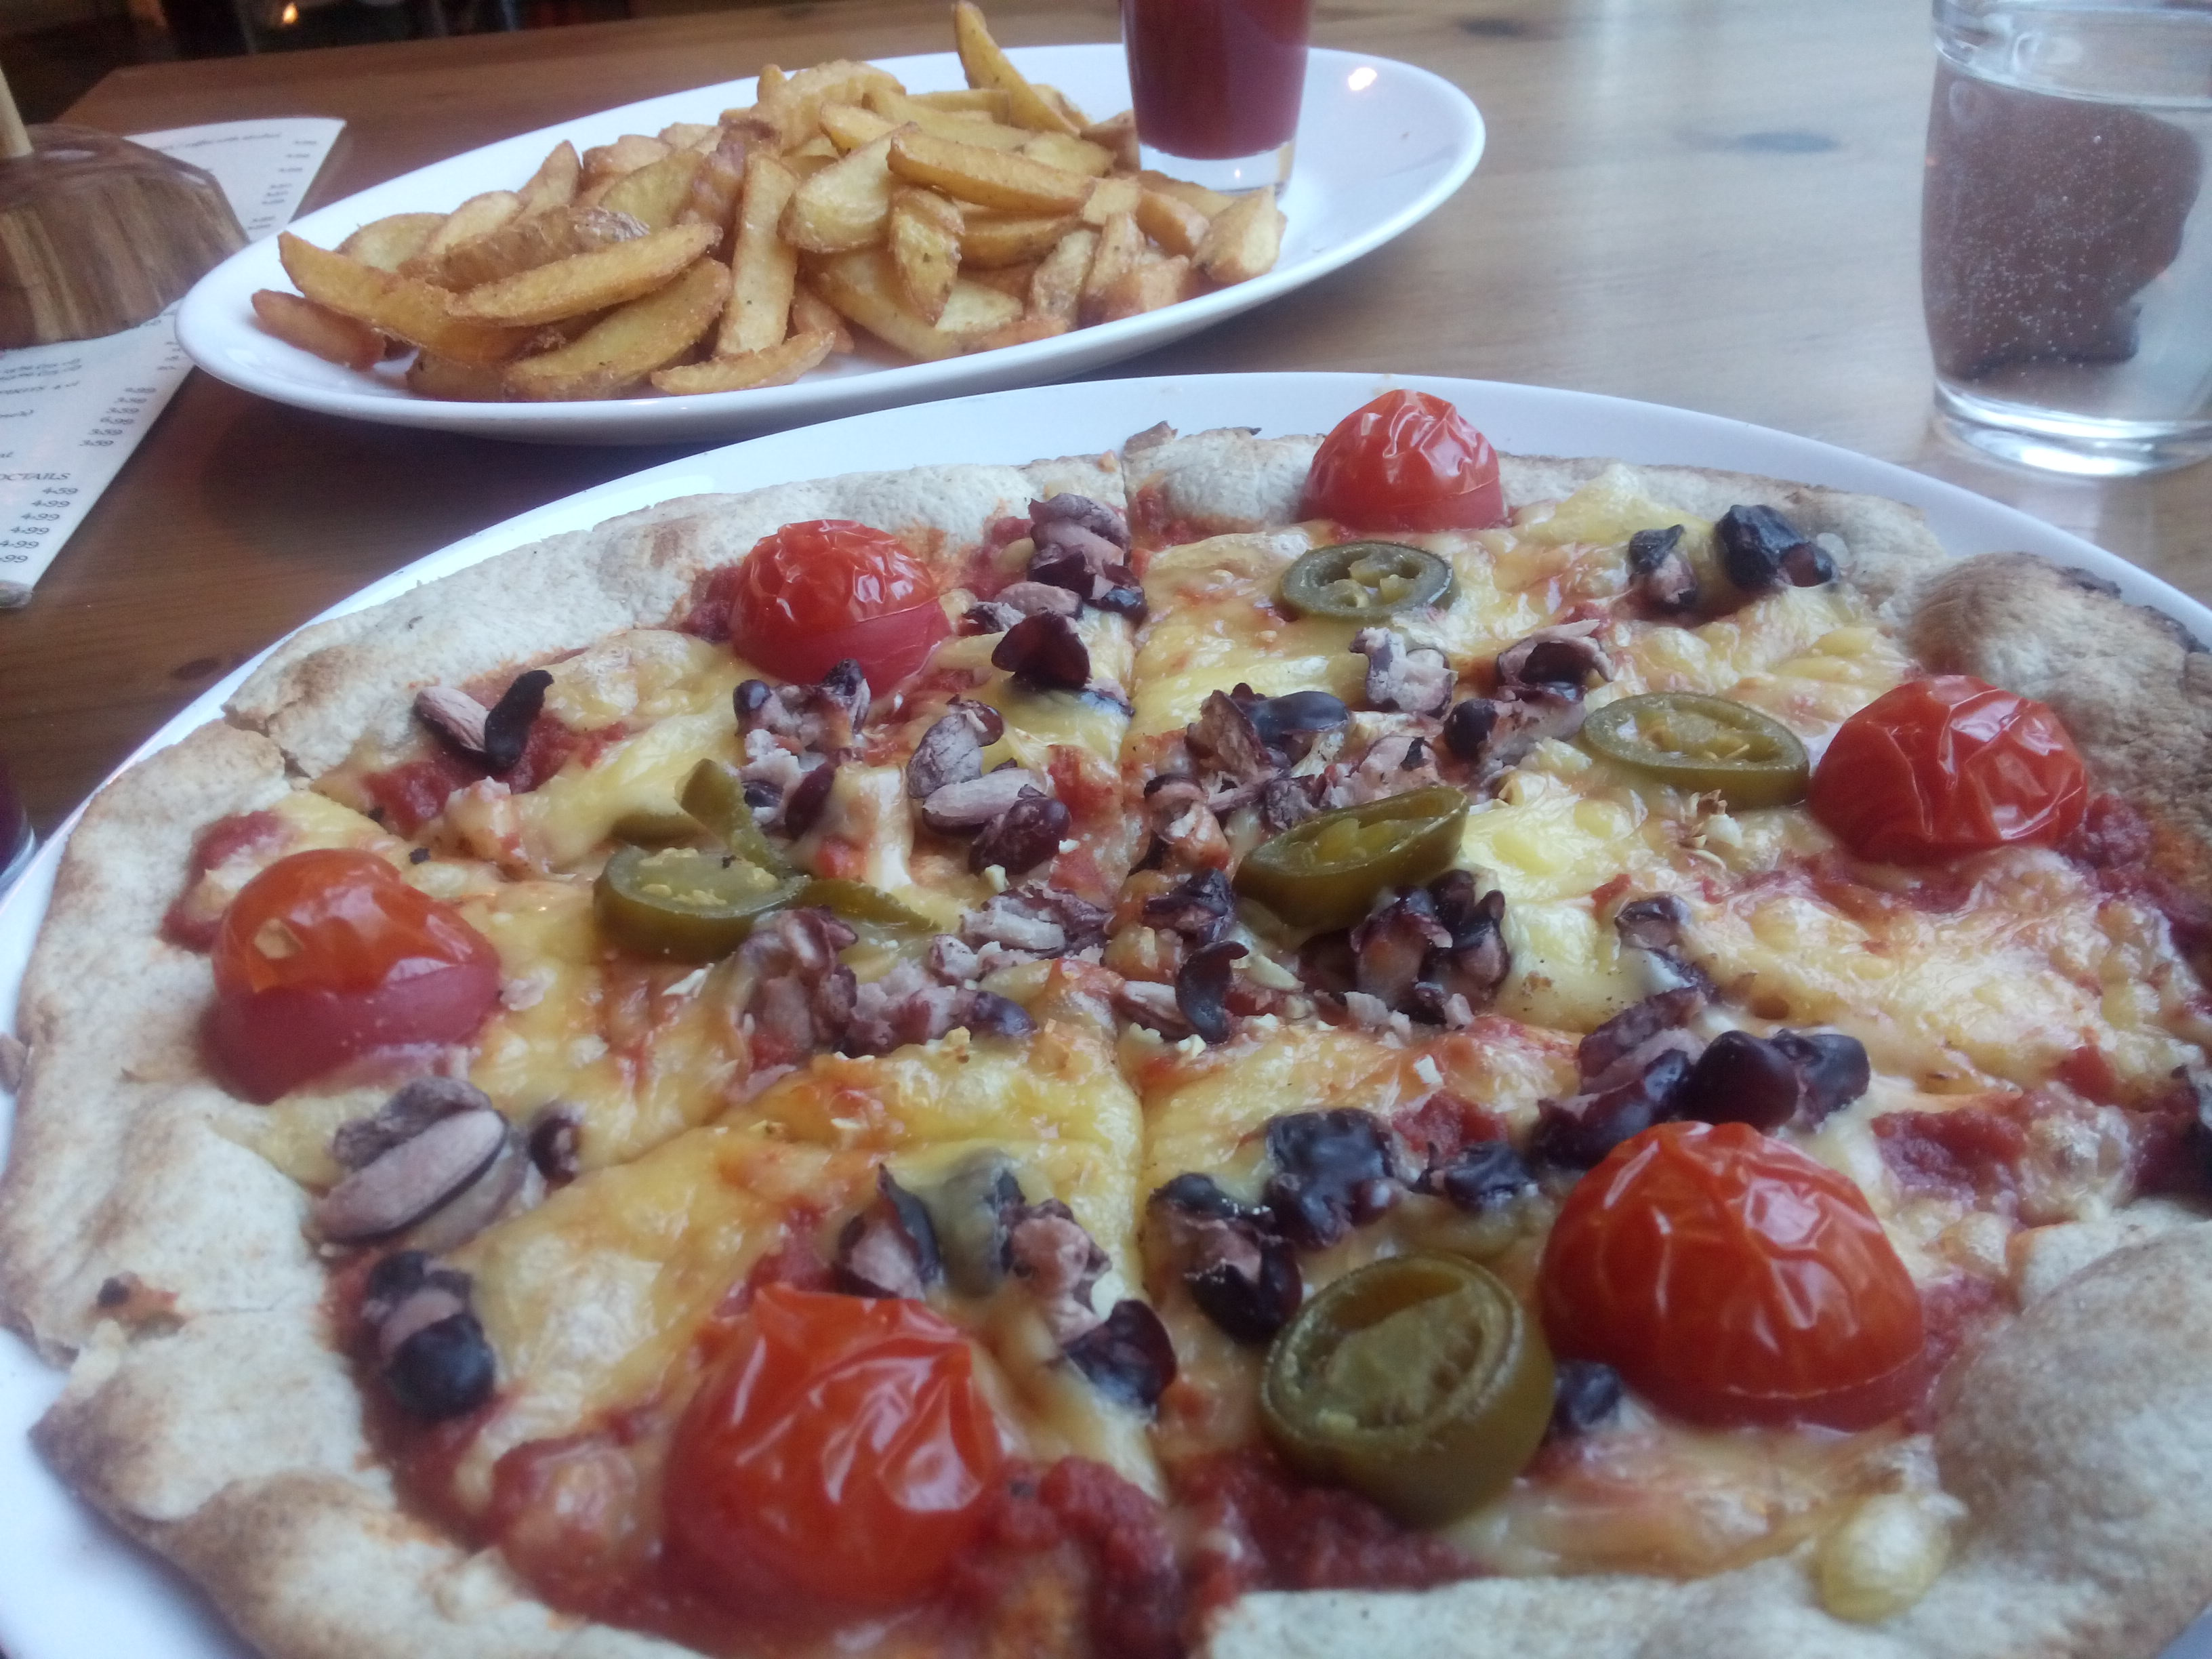 A close up of a pizza in the foreground with beans, jalapenos and tomatoes, and a plate of fries in the background